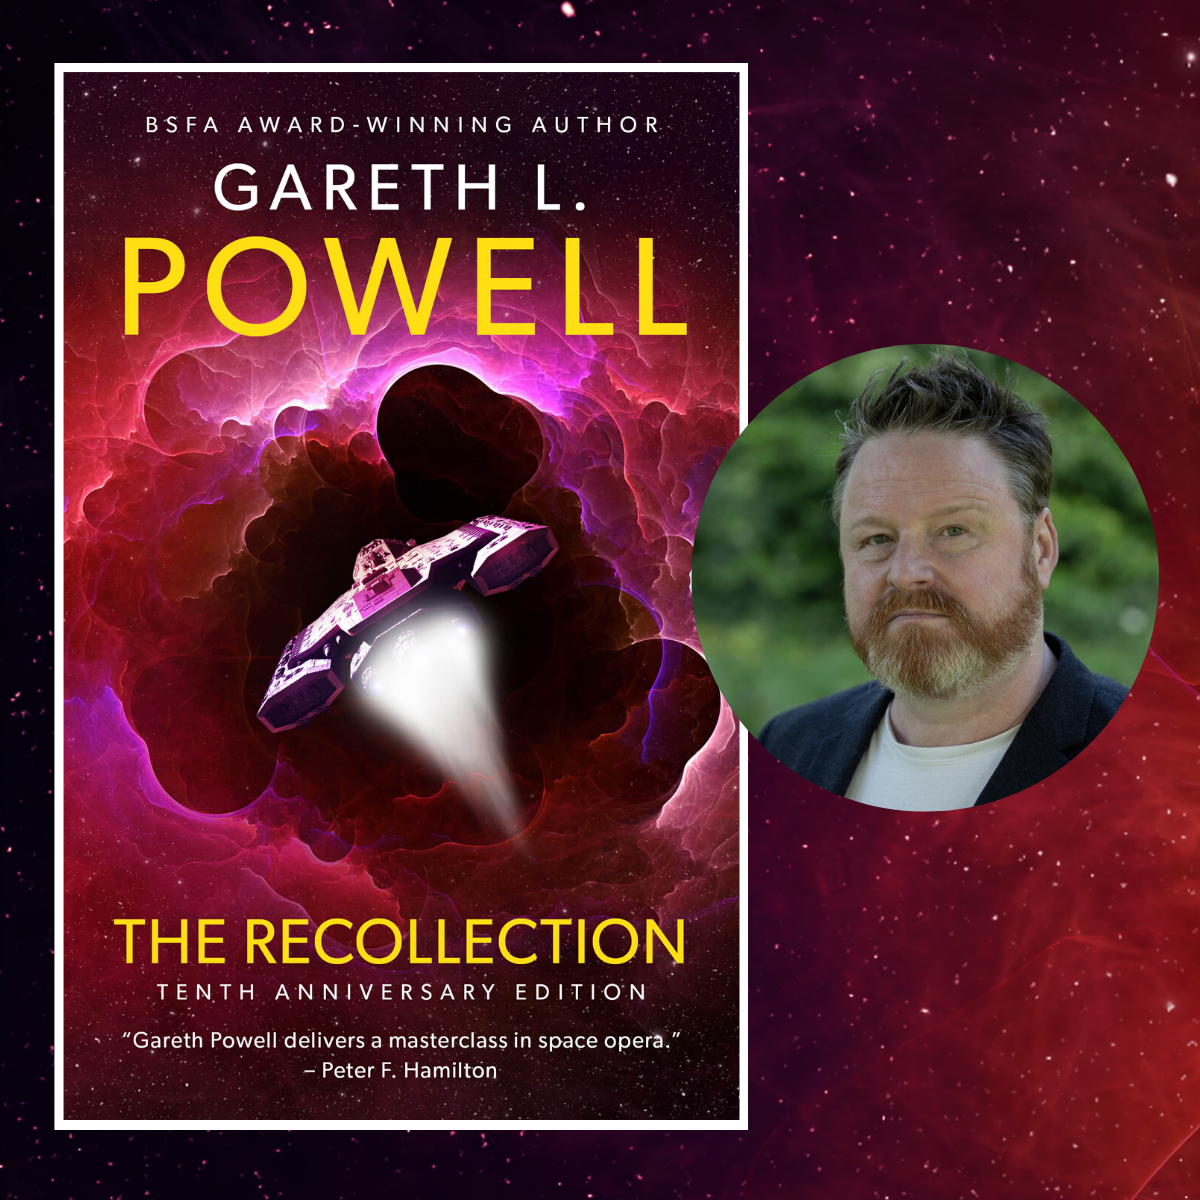 The Recollection by Gareth L Powell